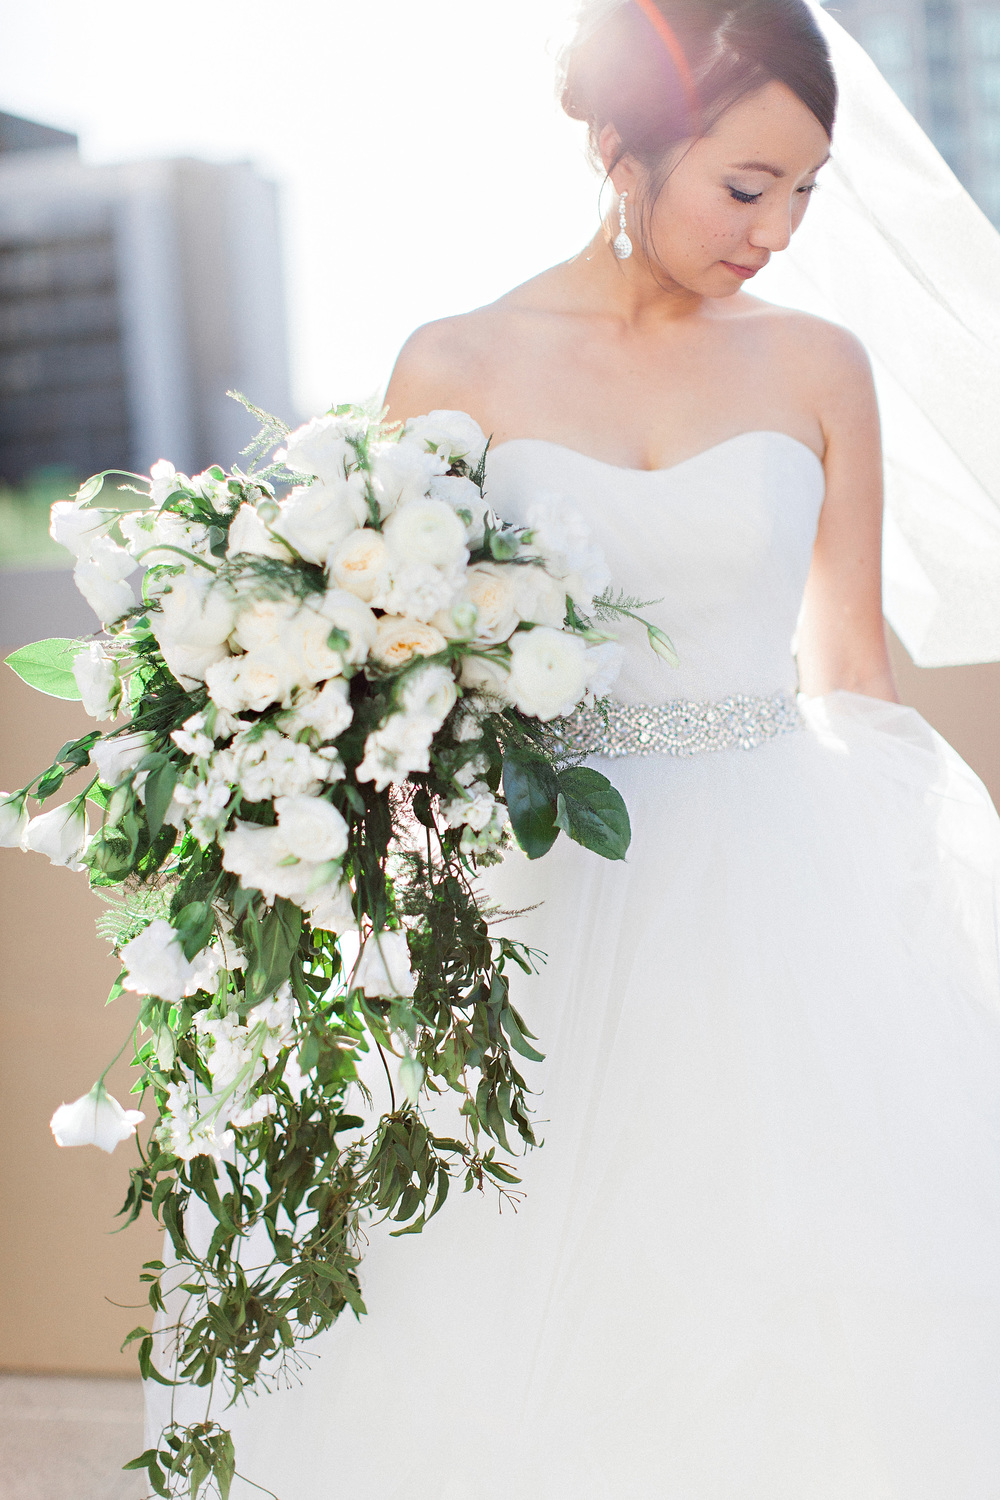 hesketh_0504.jpg